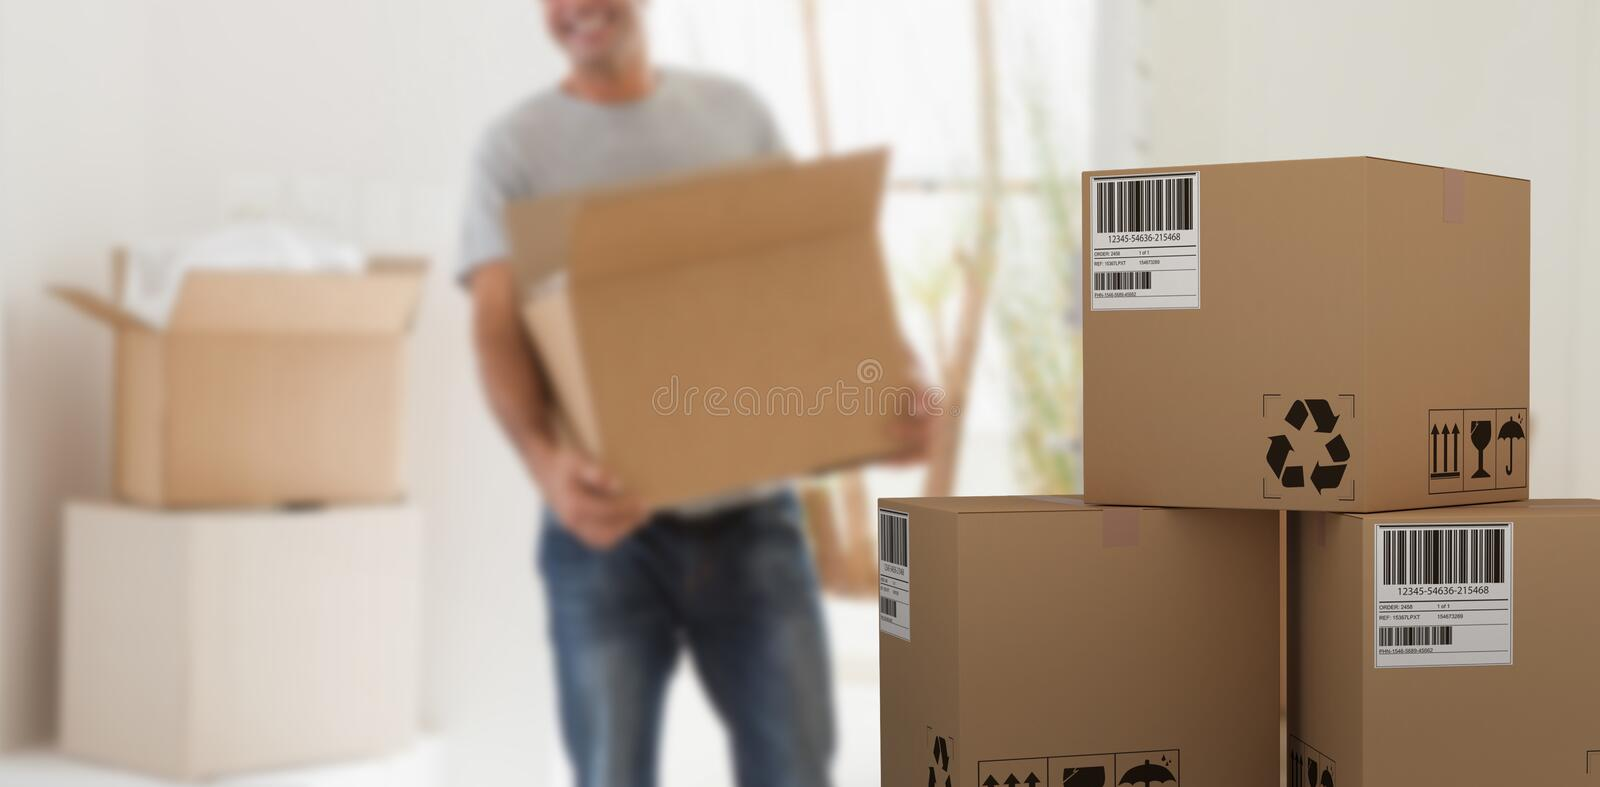 Composite 3d image of graphic image of cardboard courier boxes. Graphic 3D image of cardboard courier boxes against smiling man carrying boxes in new house stock photography